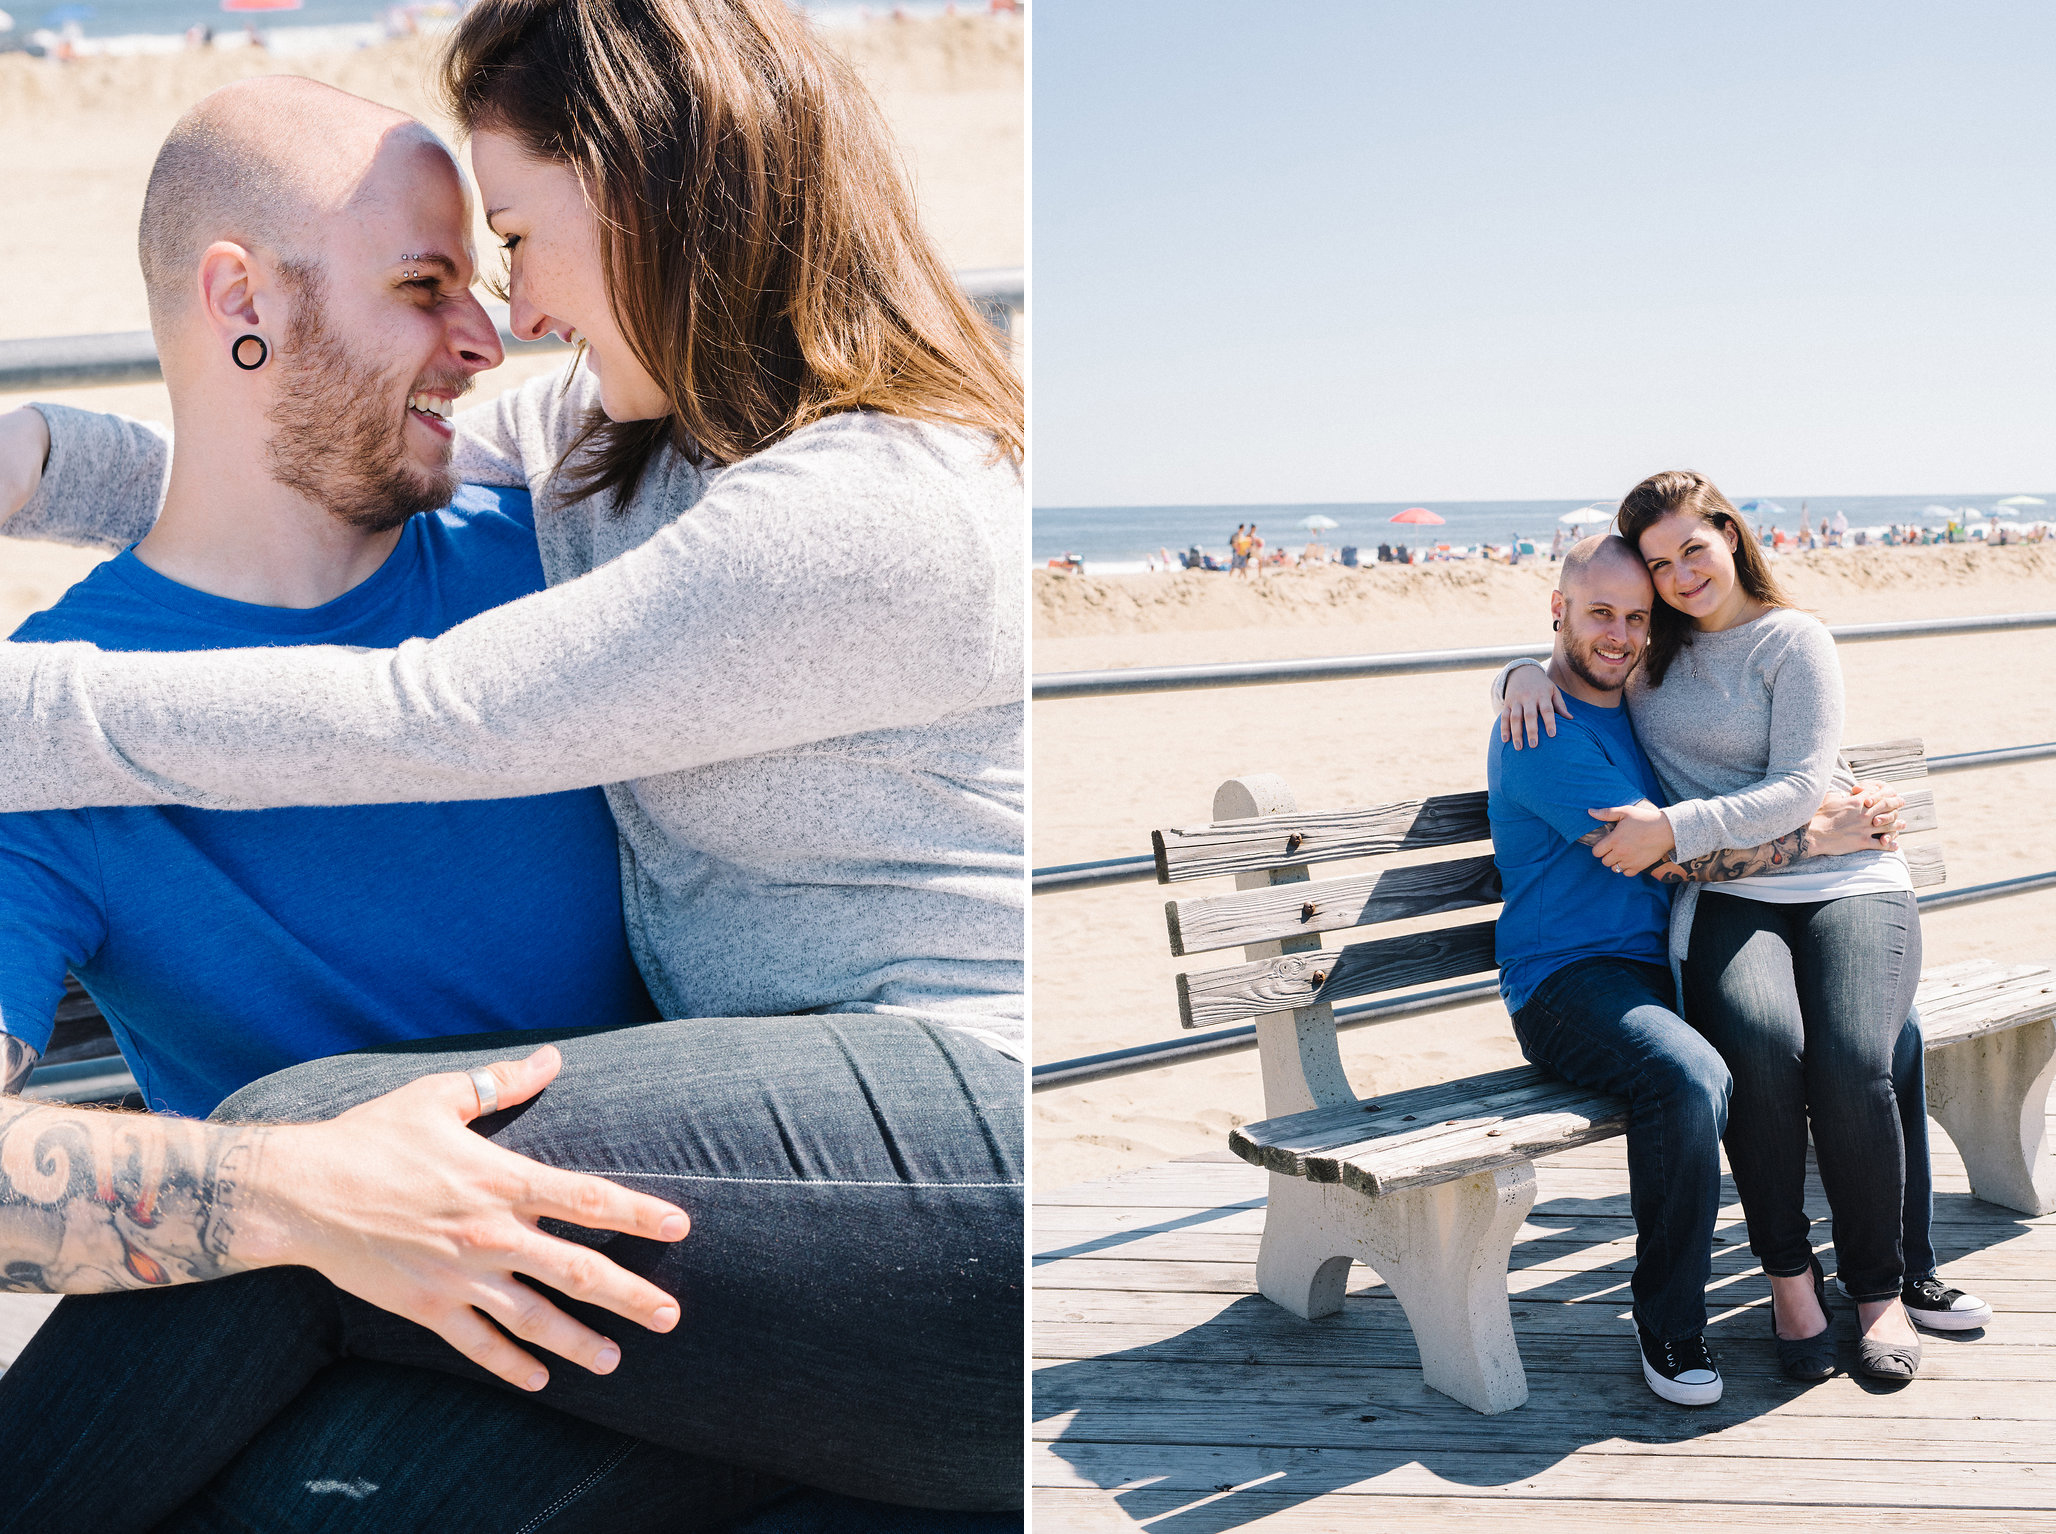 Asbury Park Boardwalk- Mallory+Brian Engagement Session- New Jersey- Olivia Christina Photo.jpg